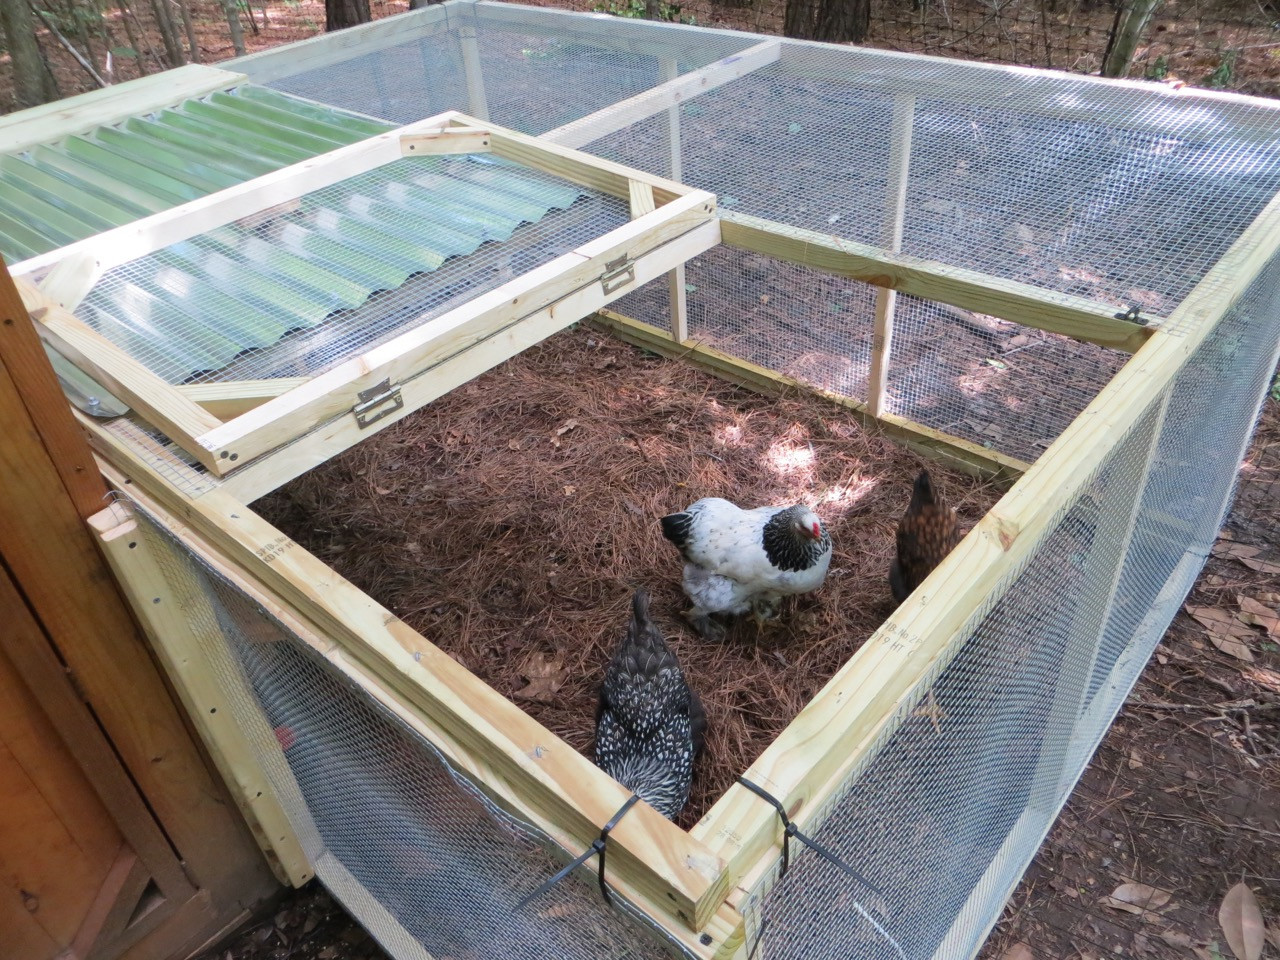 Best ideas about DIY Chicken Run . Save or Pin The Project Lady DIY Easy & Inexpensive Chicken Run Now.